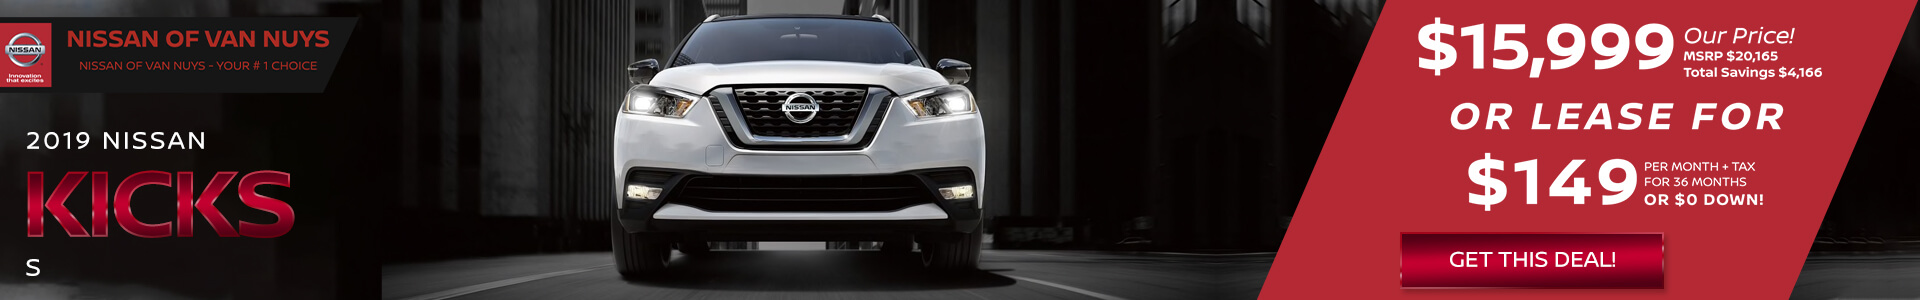 Nissan Kicks - Lease for $249